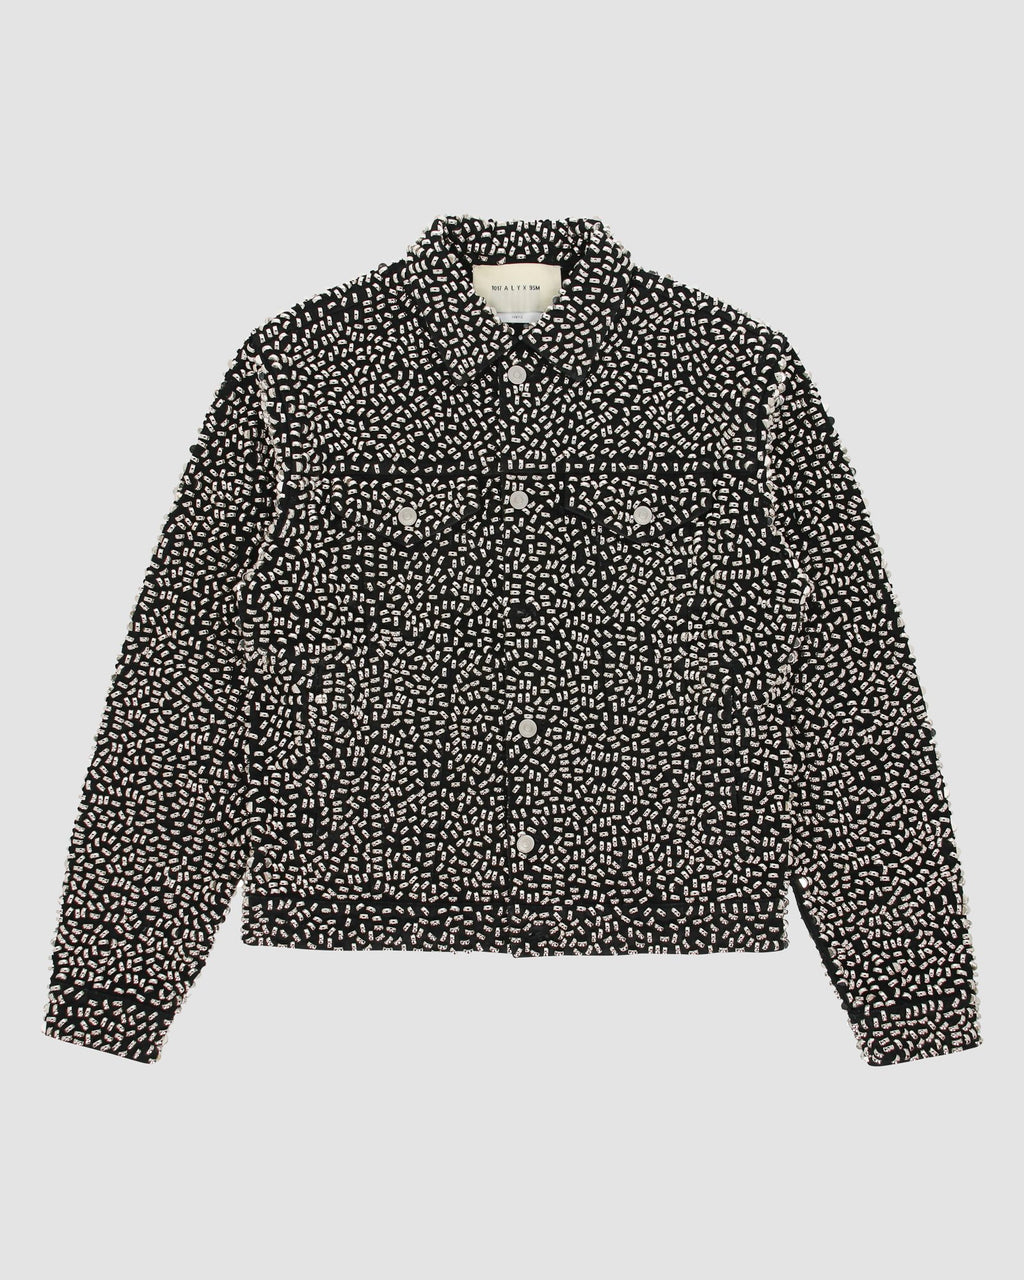 UNISEX STUDDED DENIM JACKET MADE TO ORDER